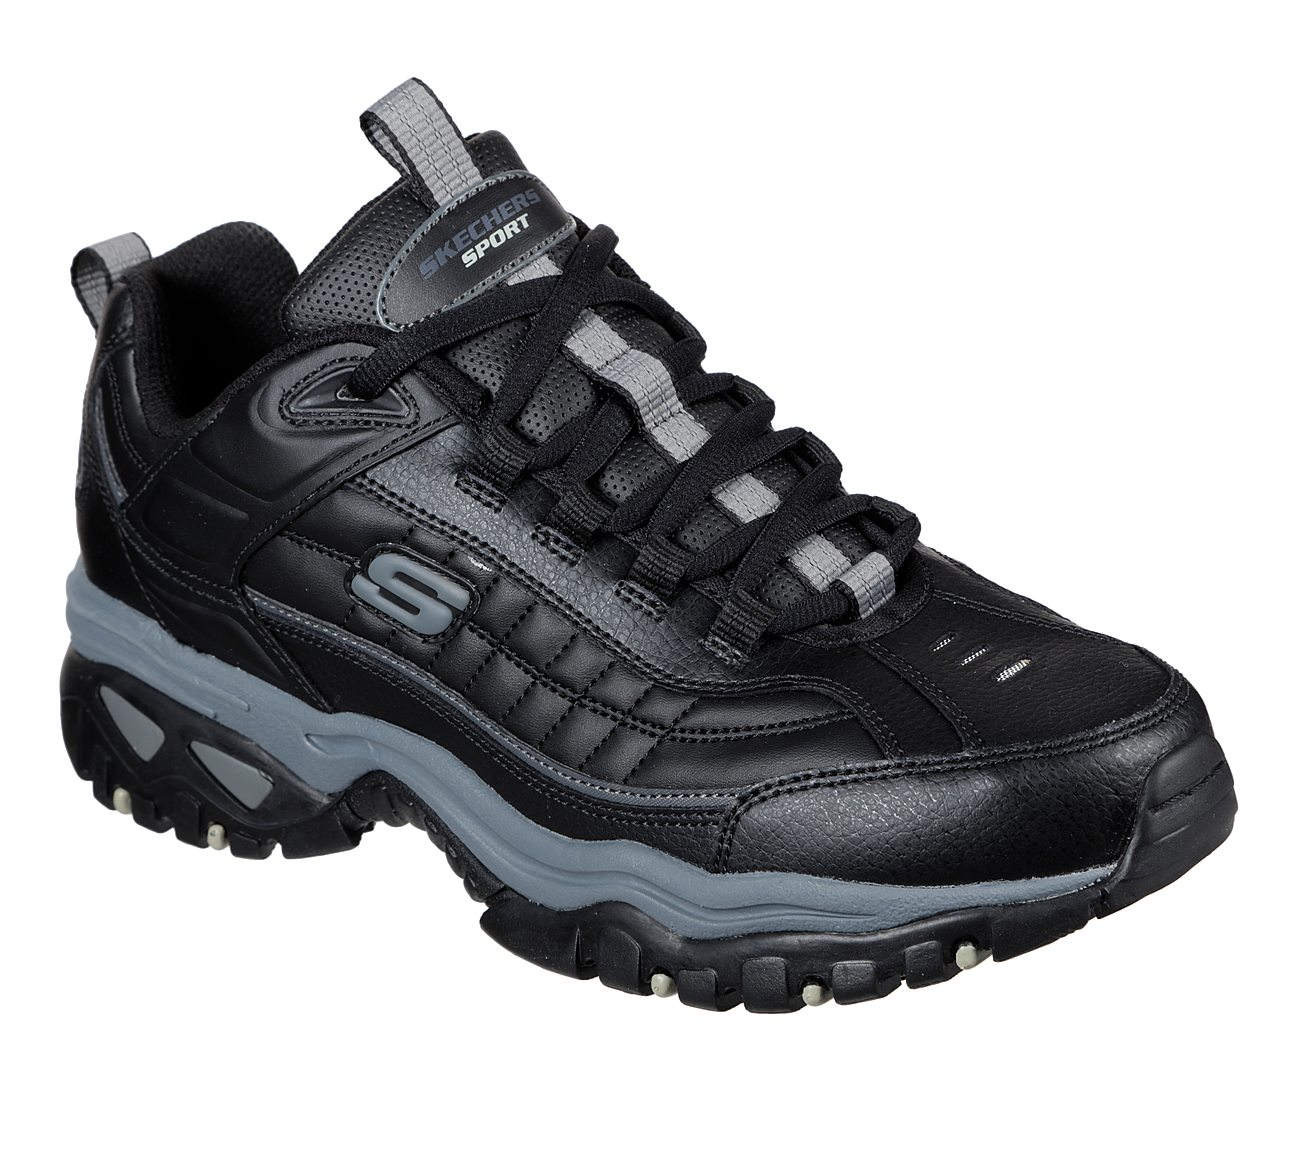 skechers no tie tennis shoes